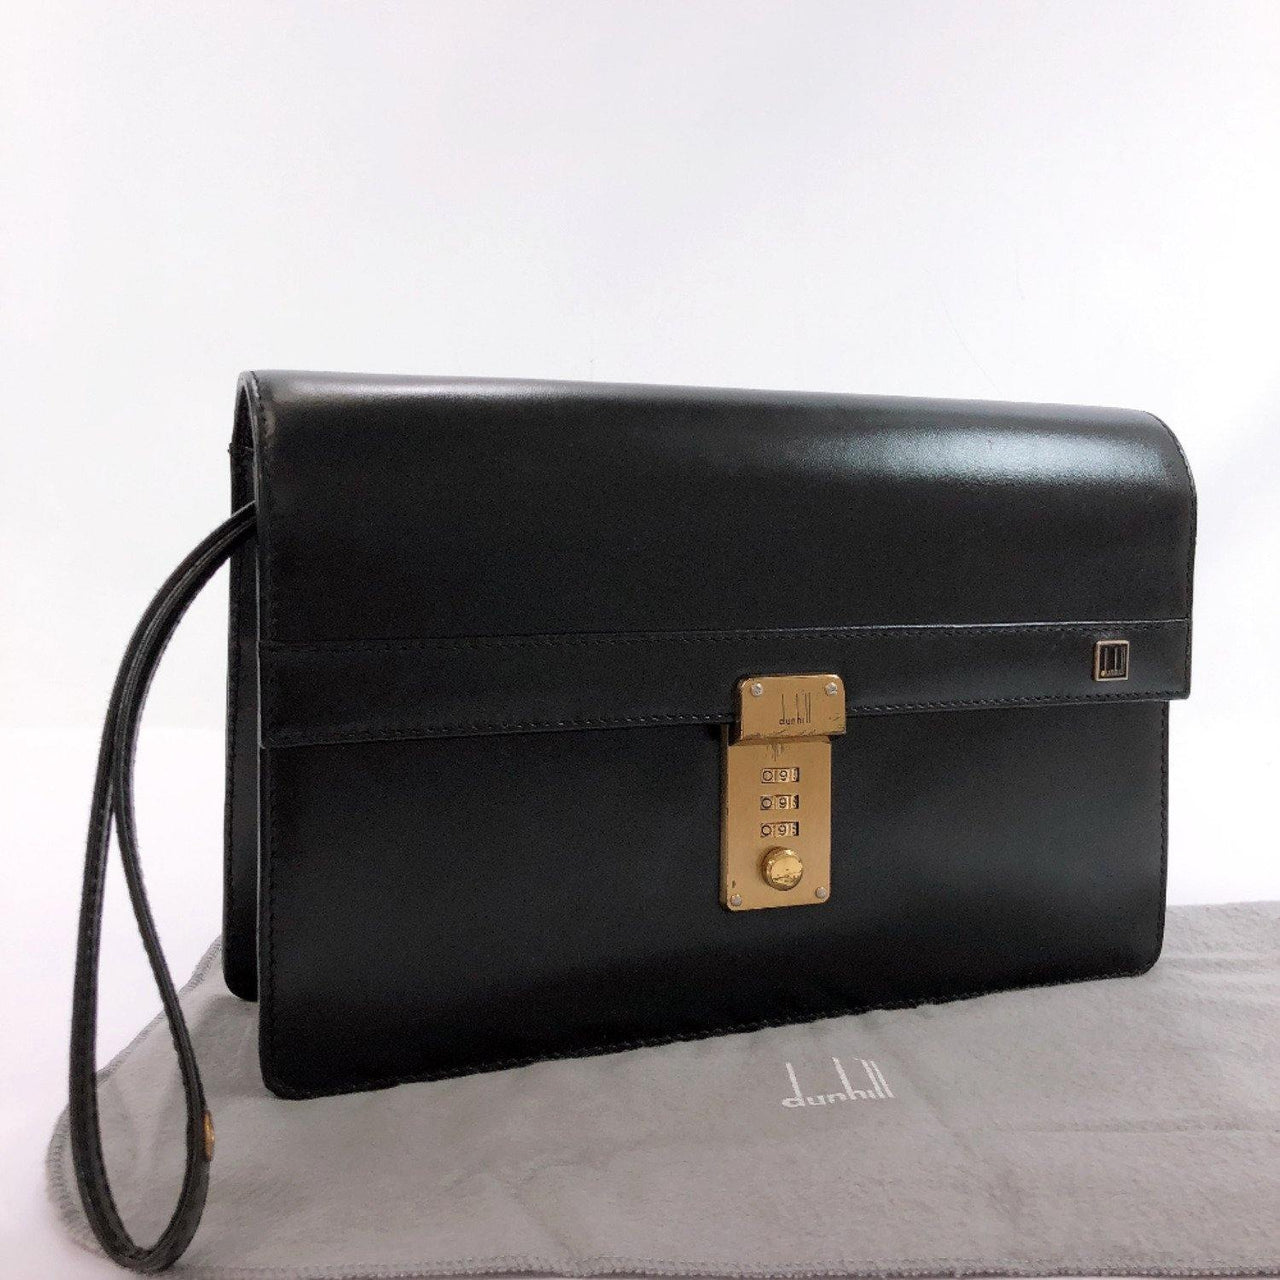 Dunhill business bag Number lock leather black mens Used